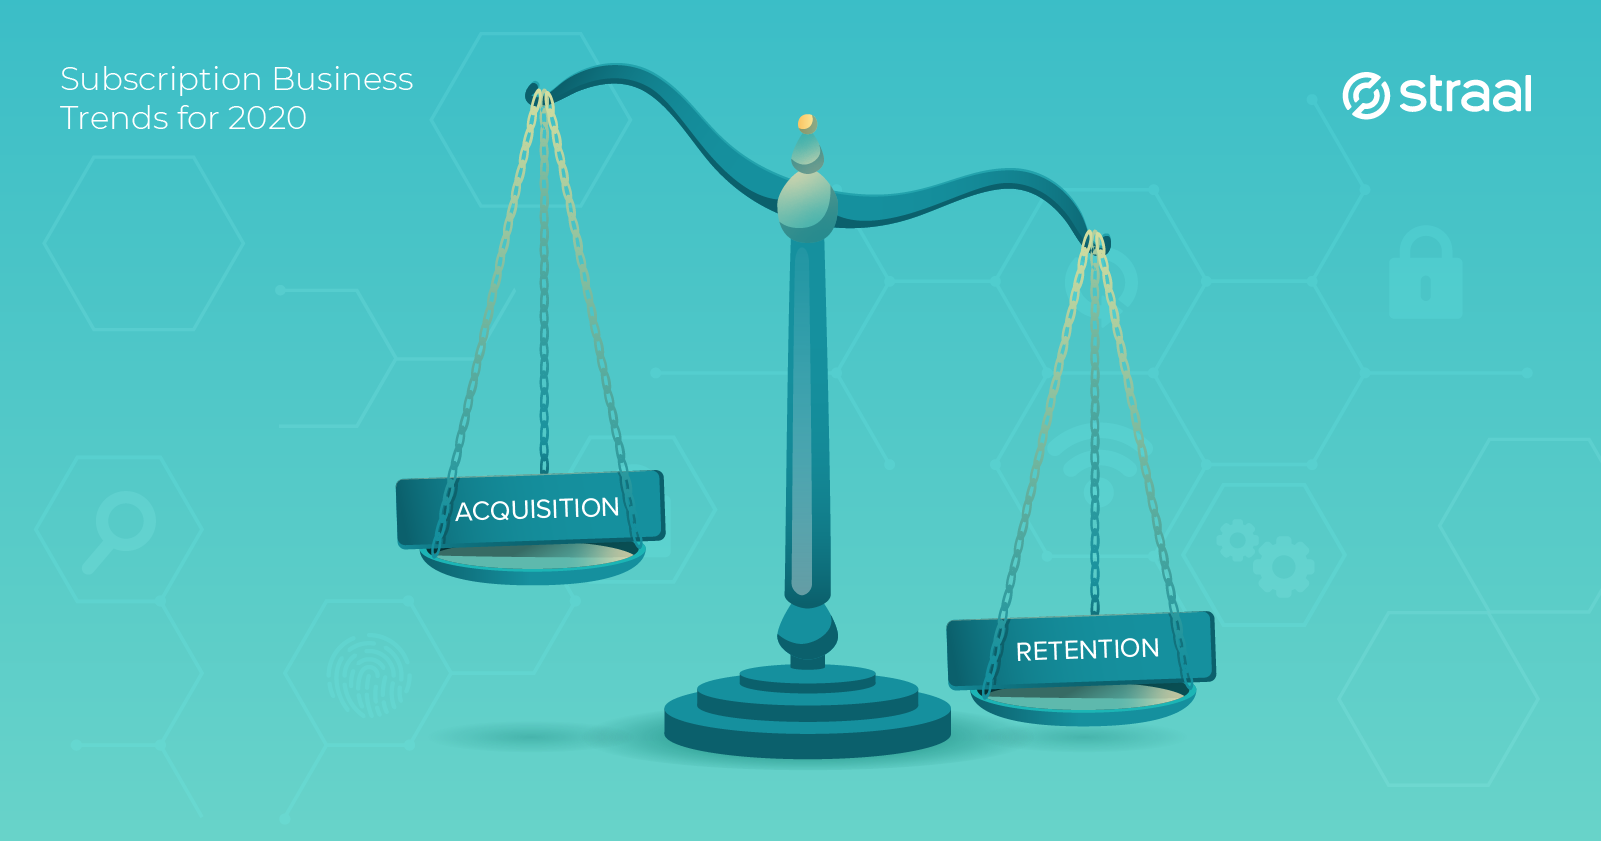 straal subscription trends 2020 retention acquisition